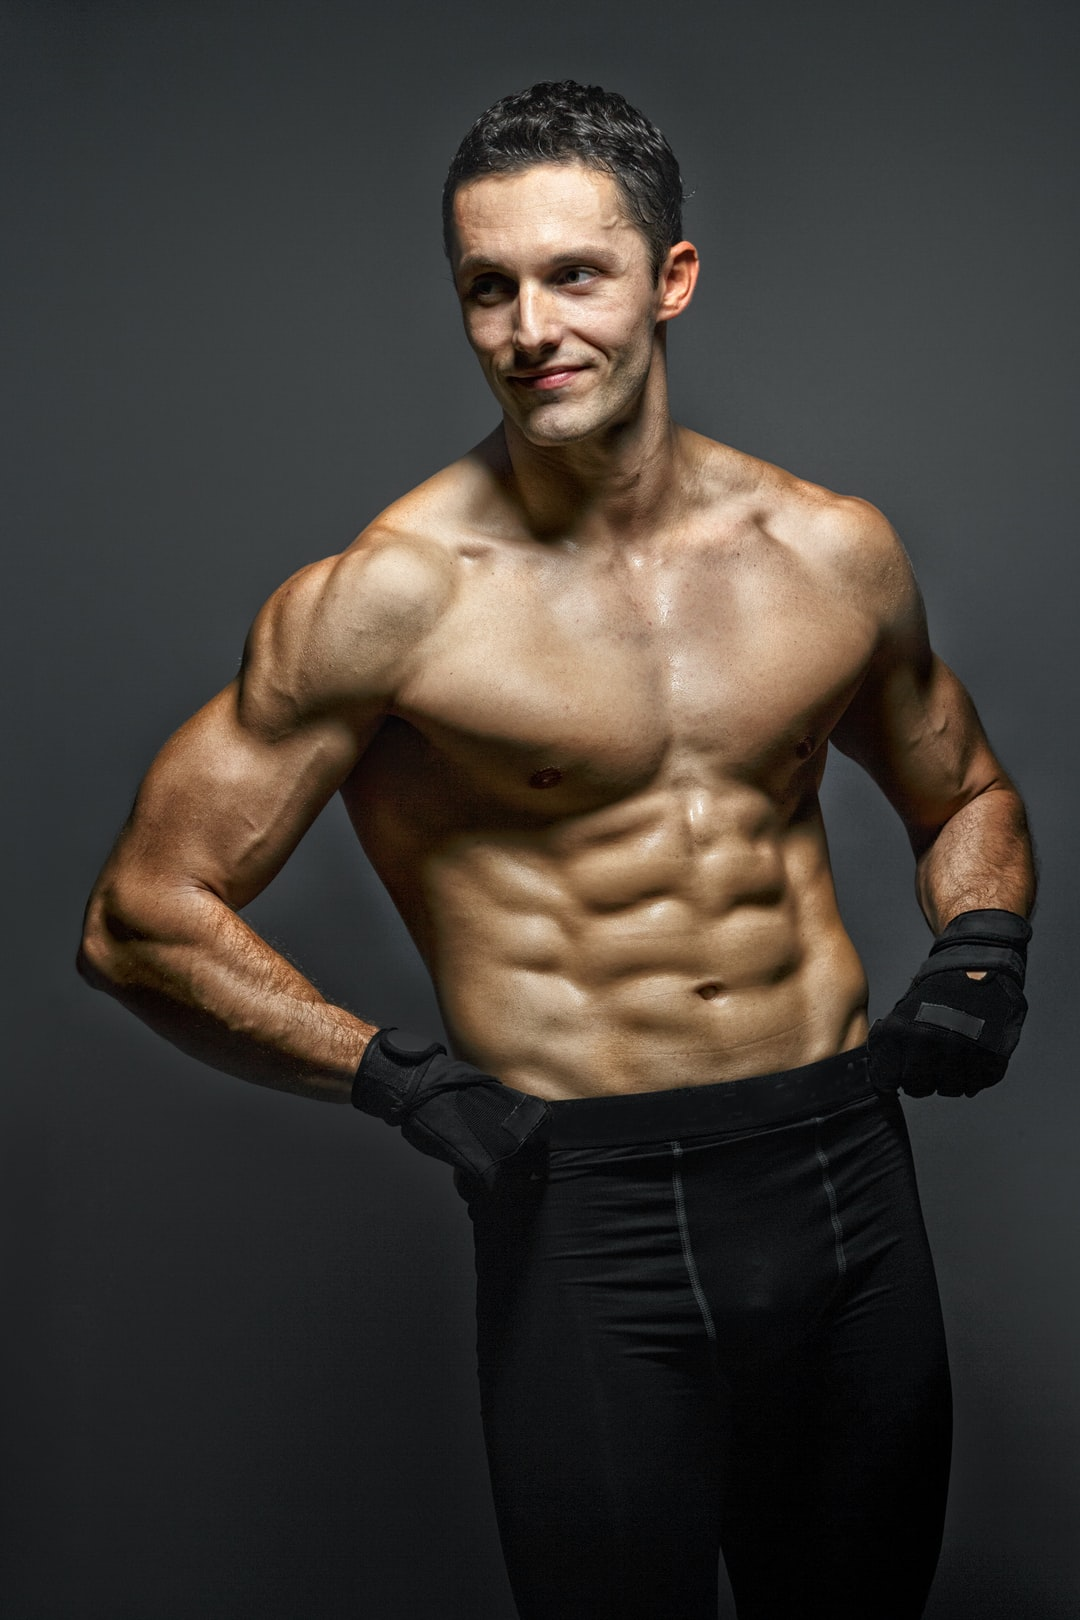 A handsome shirtless man with ripped abs smiling.